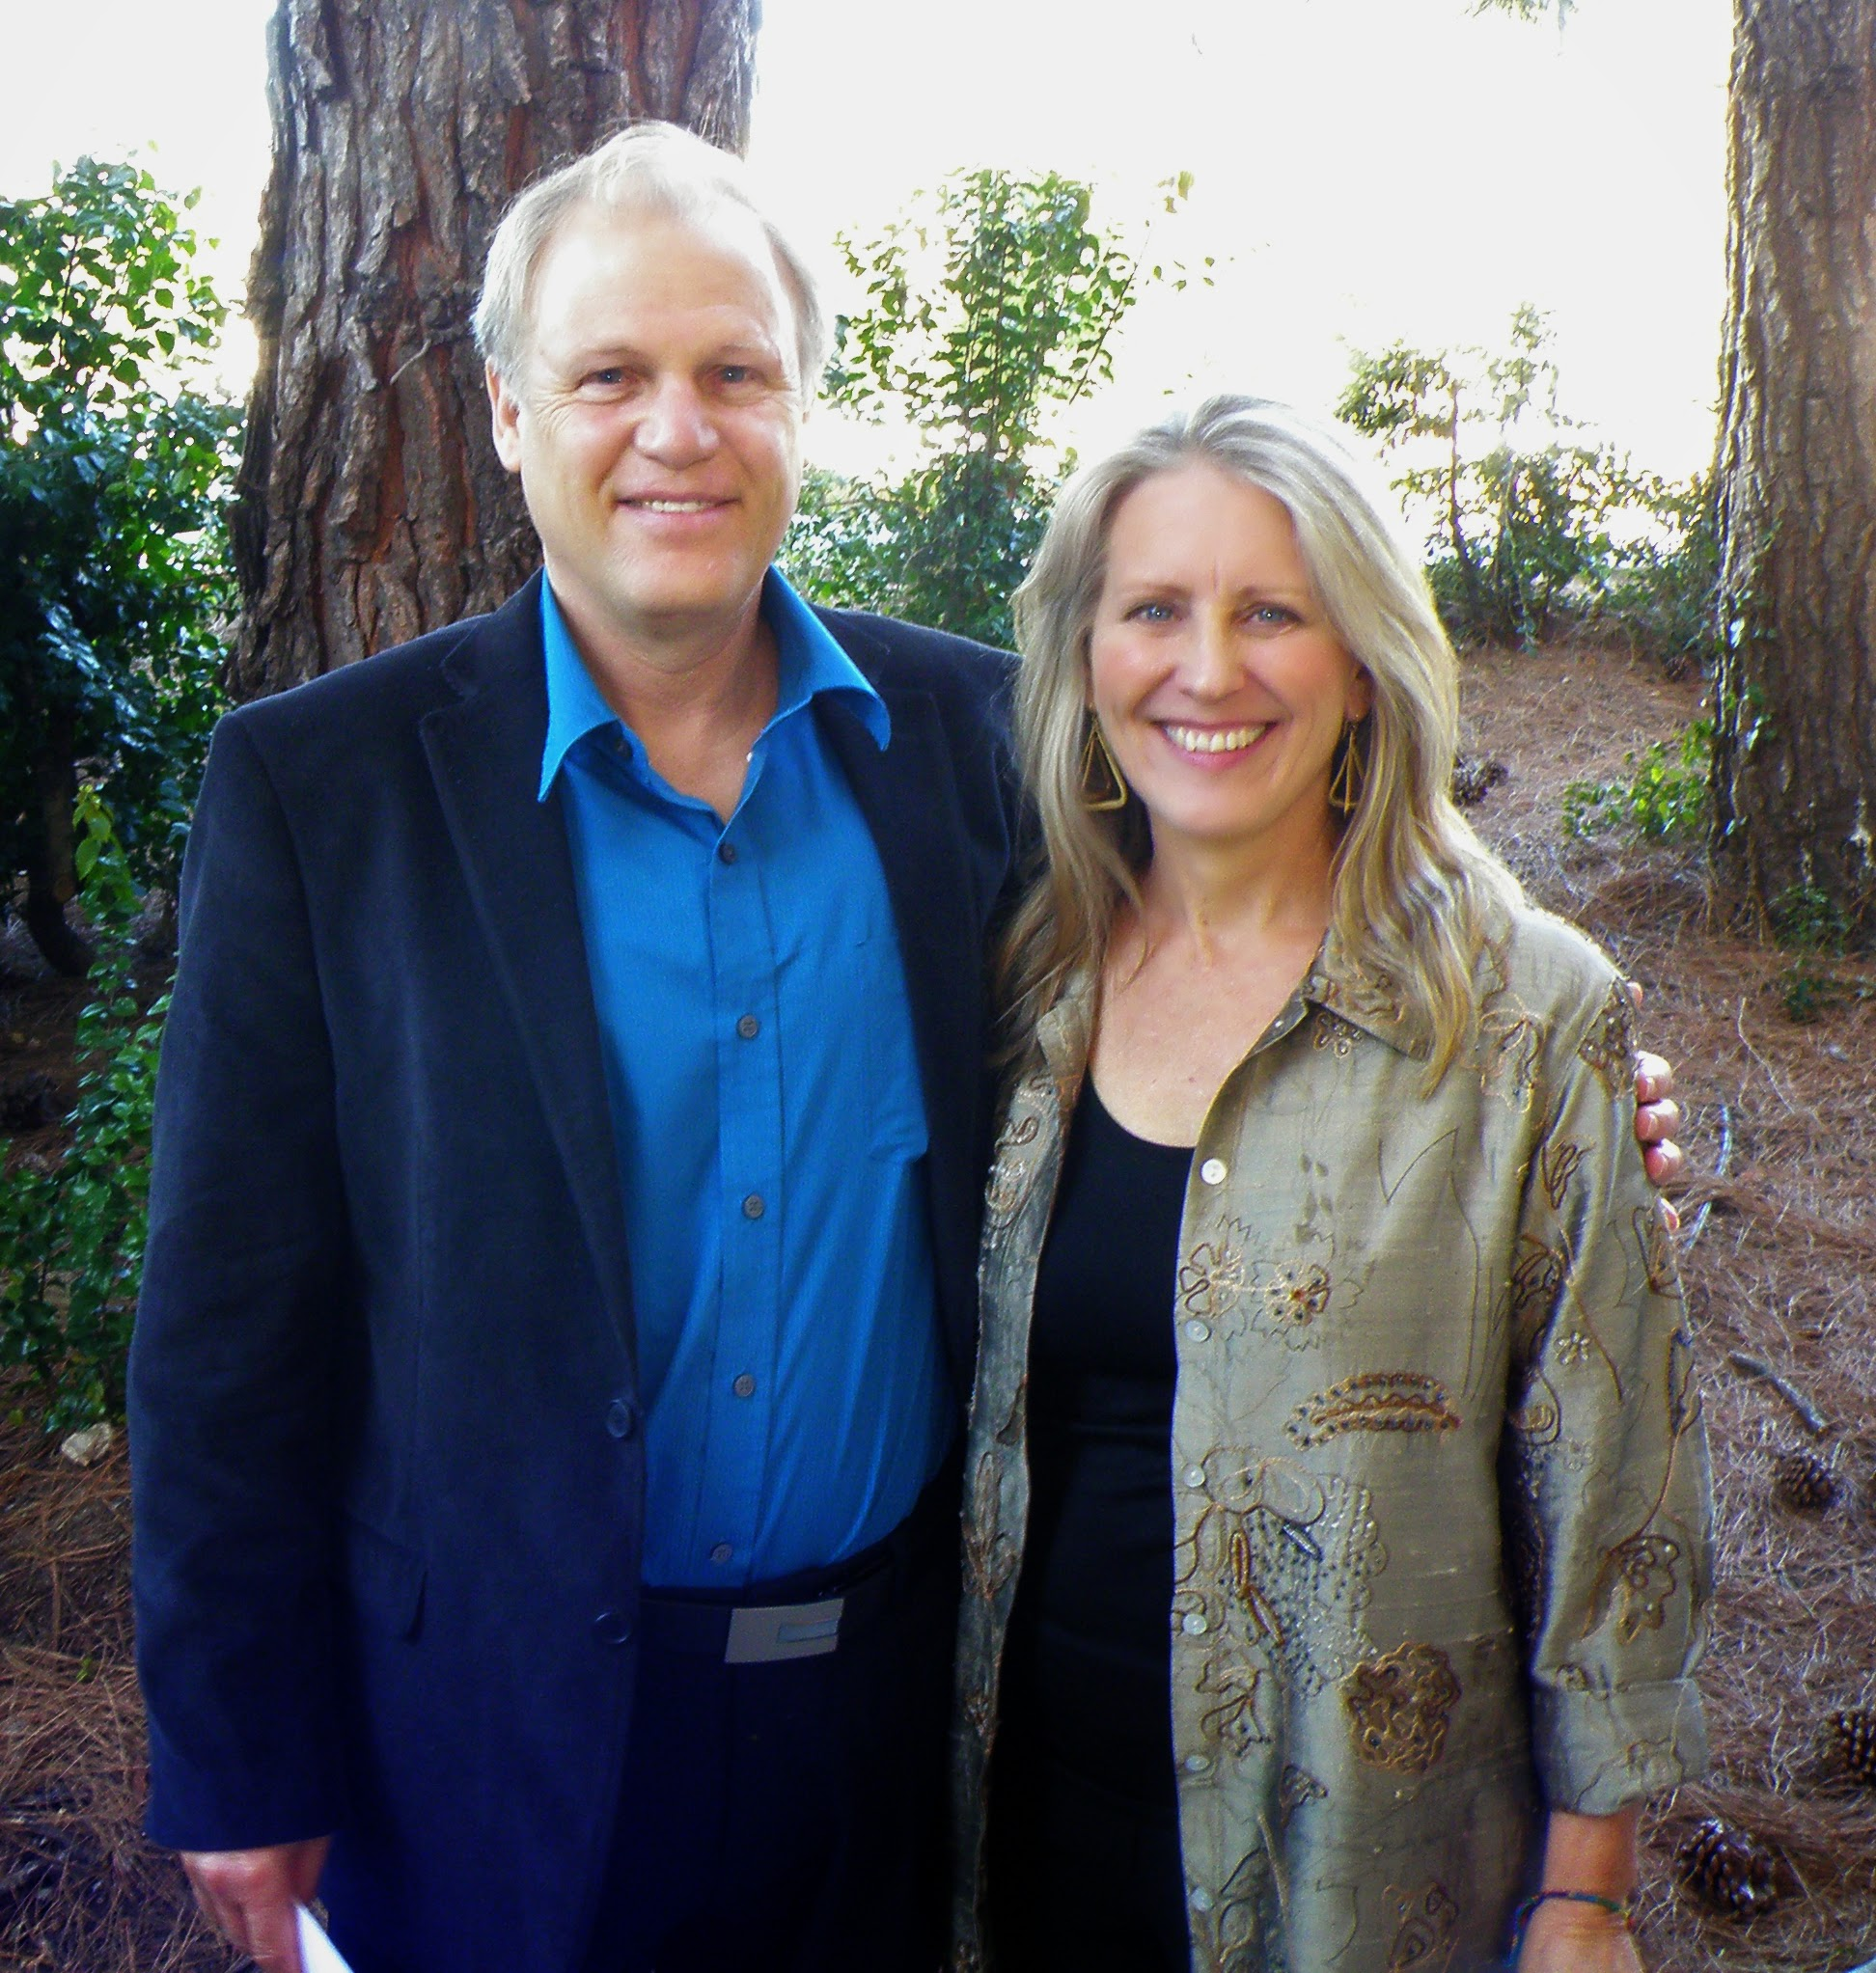 Caption: Will Keepin and Cynthia Brix